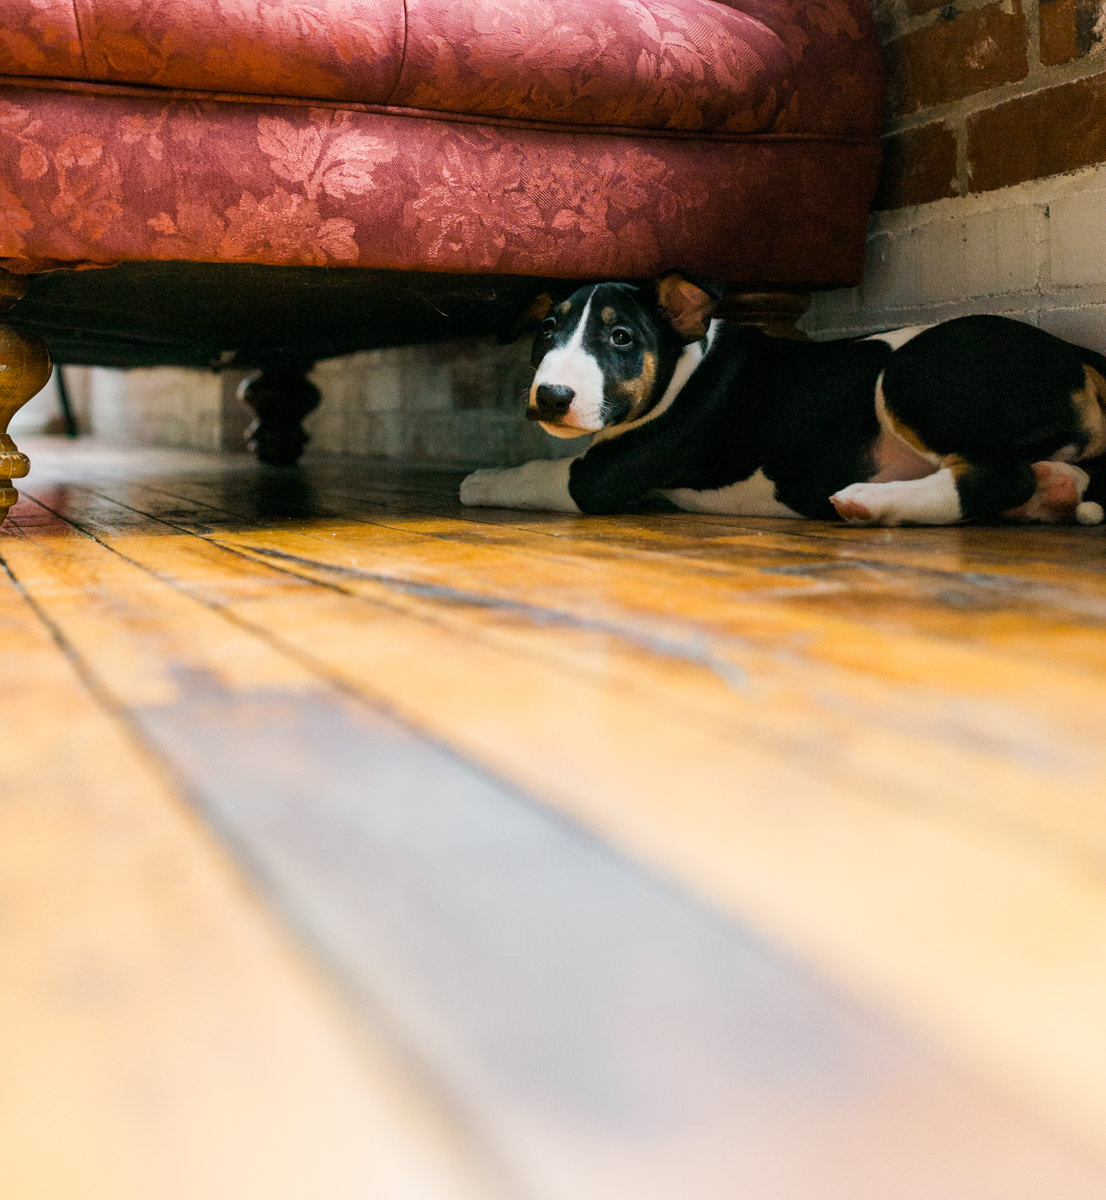 Bull Terrier Dog under the Couch